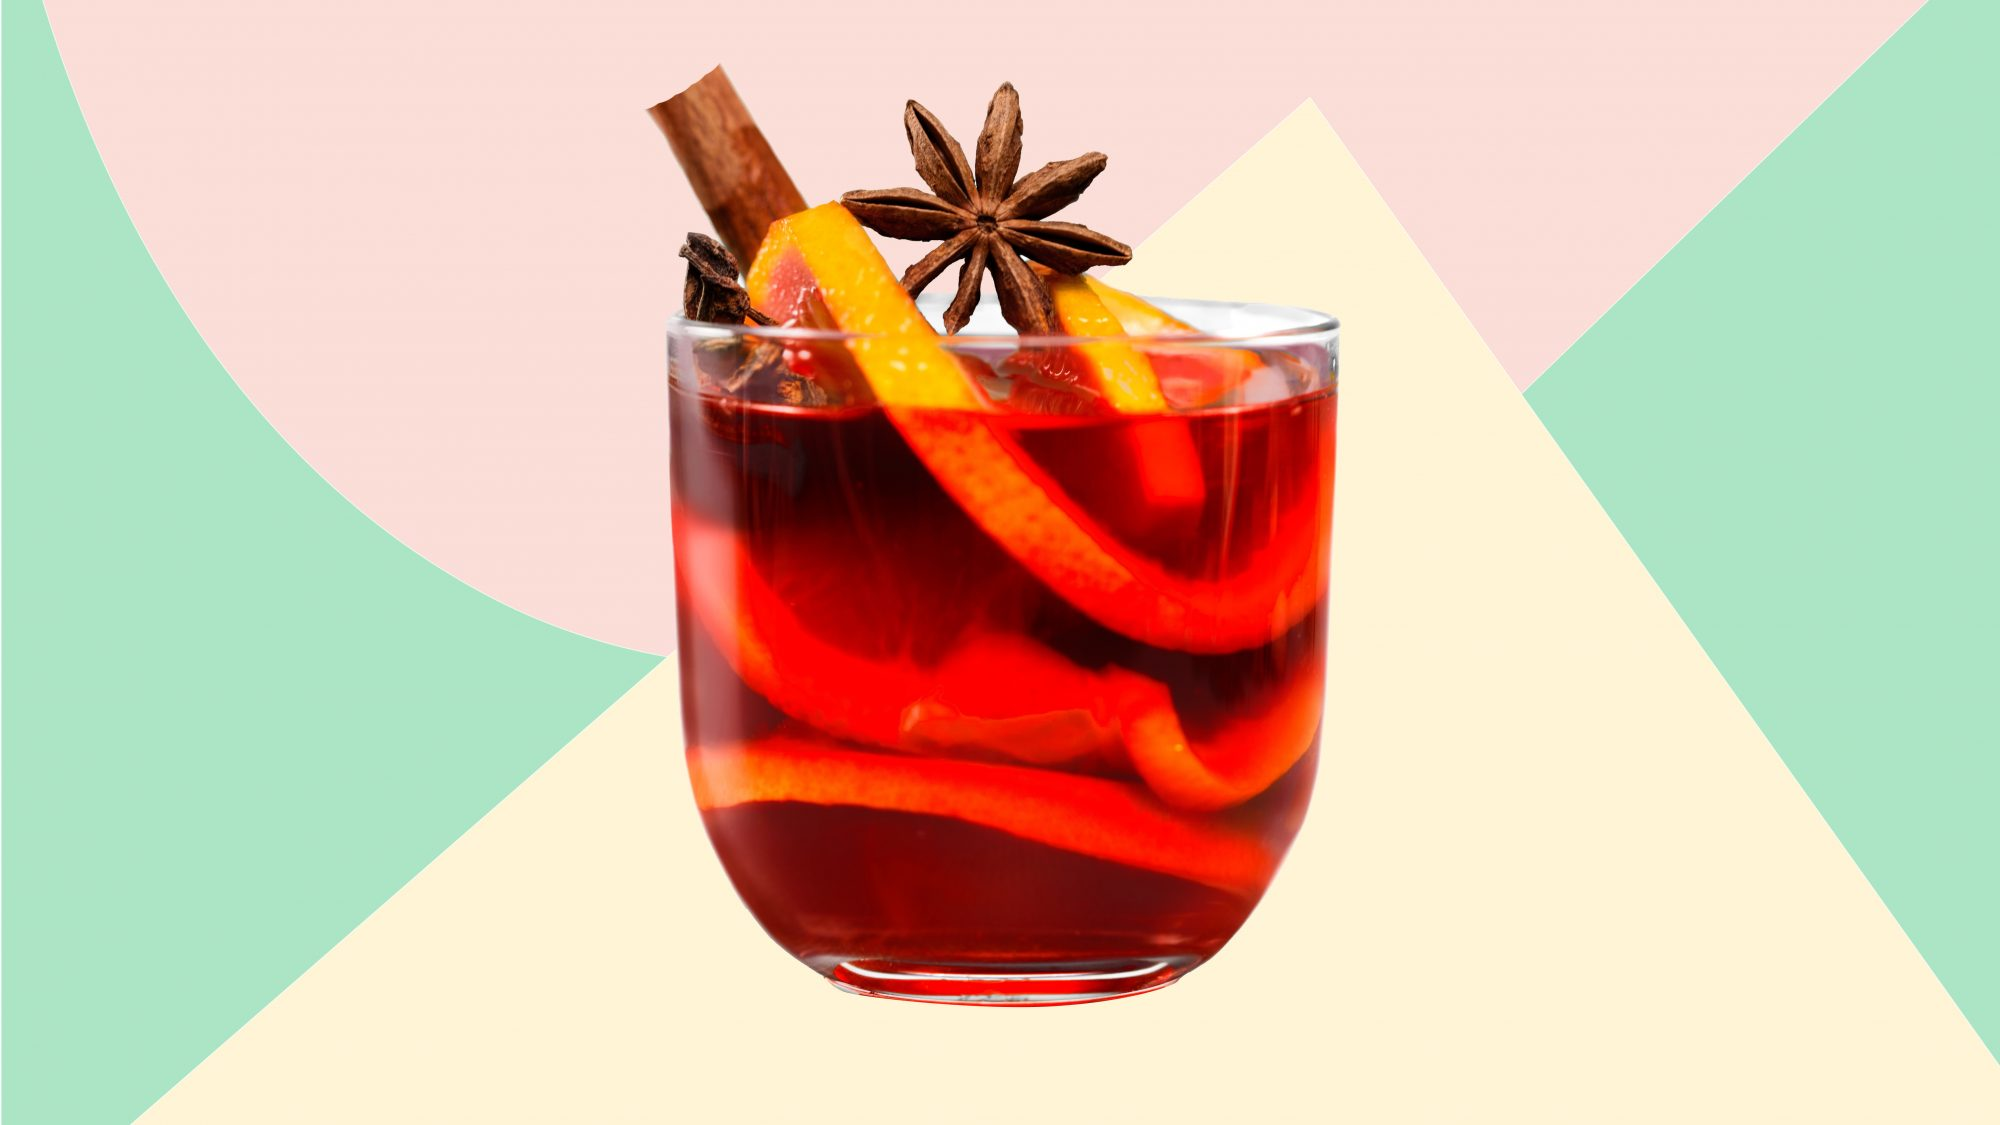 How to Make Mulled Wine - Mulled Wine Recipe